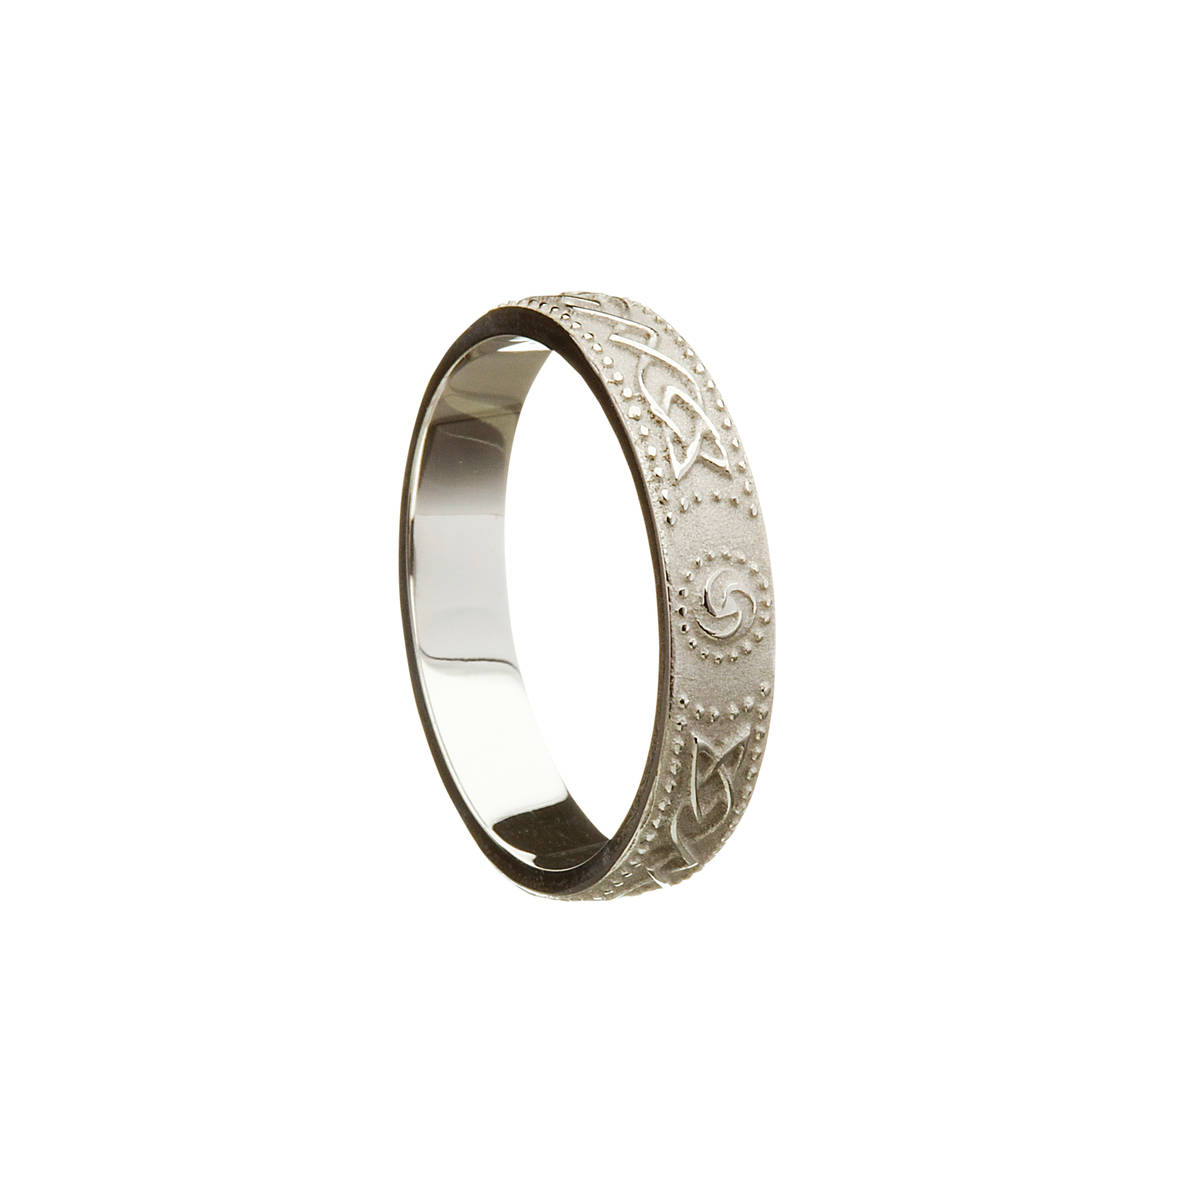 Silver white man'sCeltic warrior shield 4.9mm wide approx. ring.A very practical everyday ring with detailing which will generate a lot of interest.